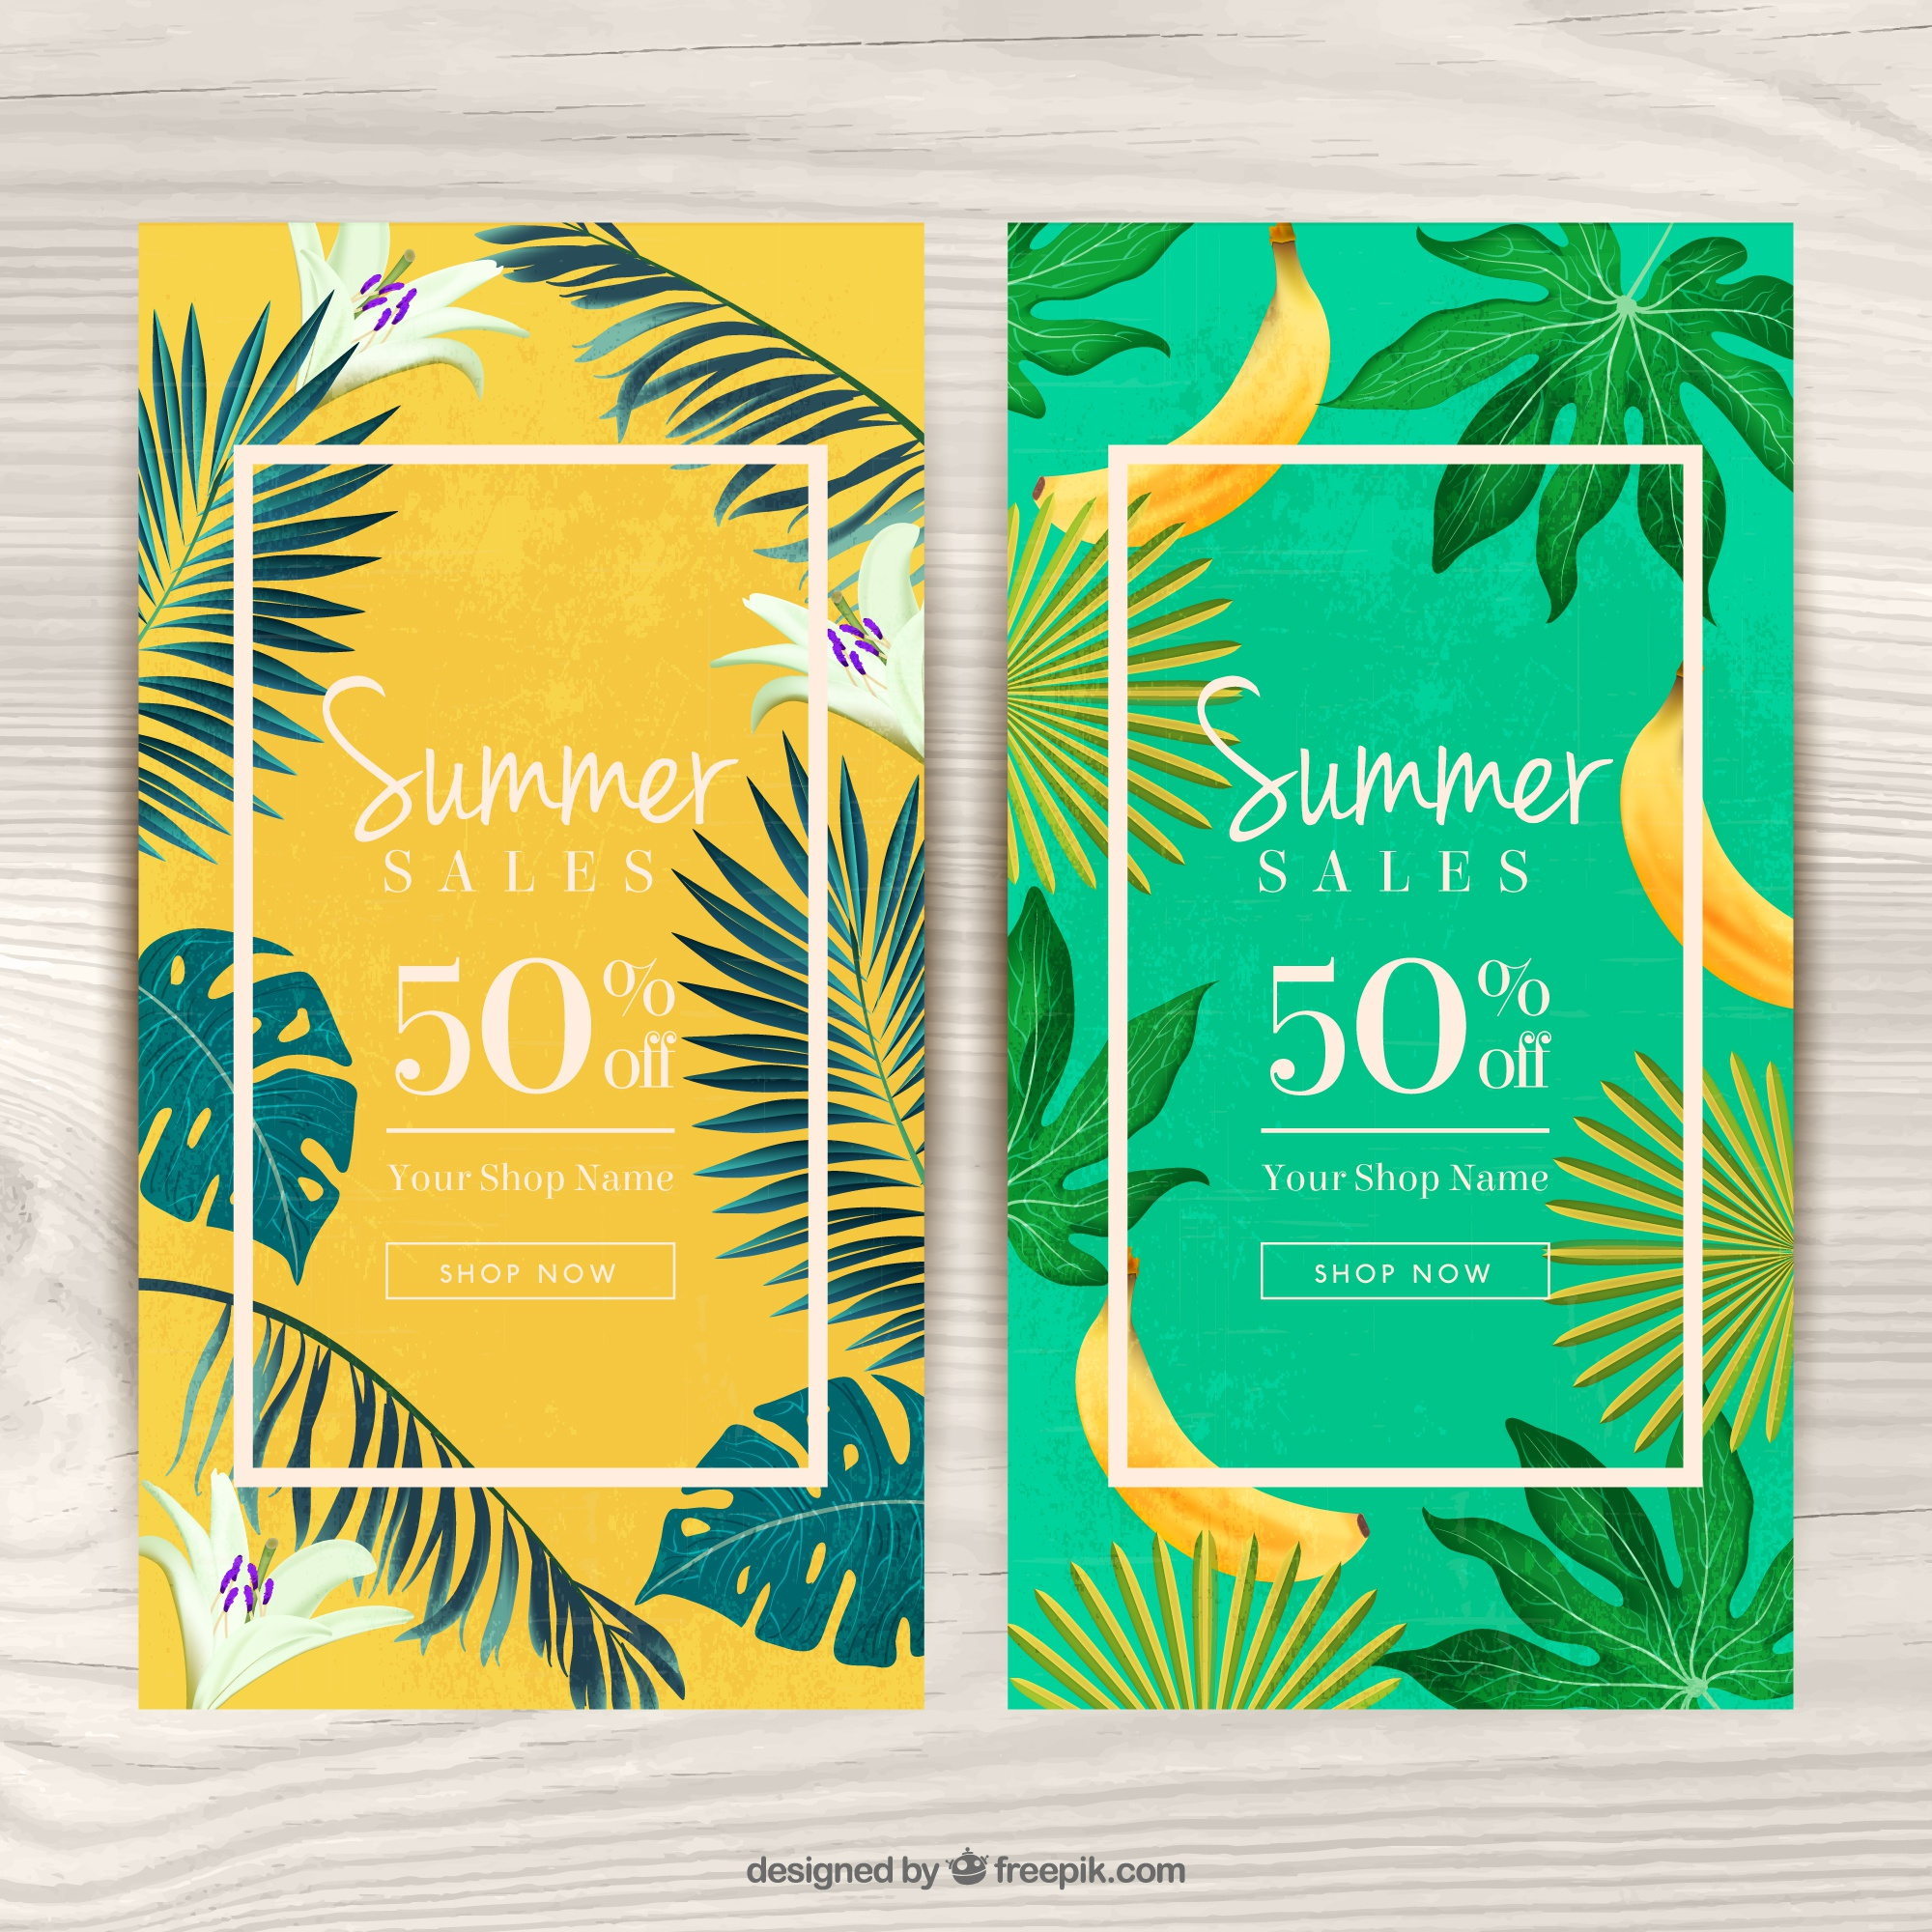 Vouchers for summer with tropical theme